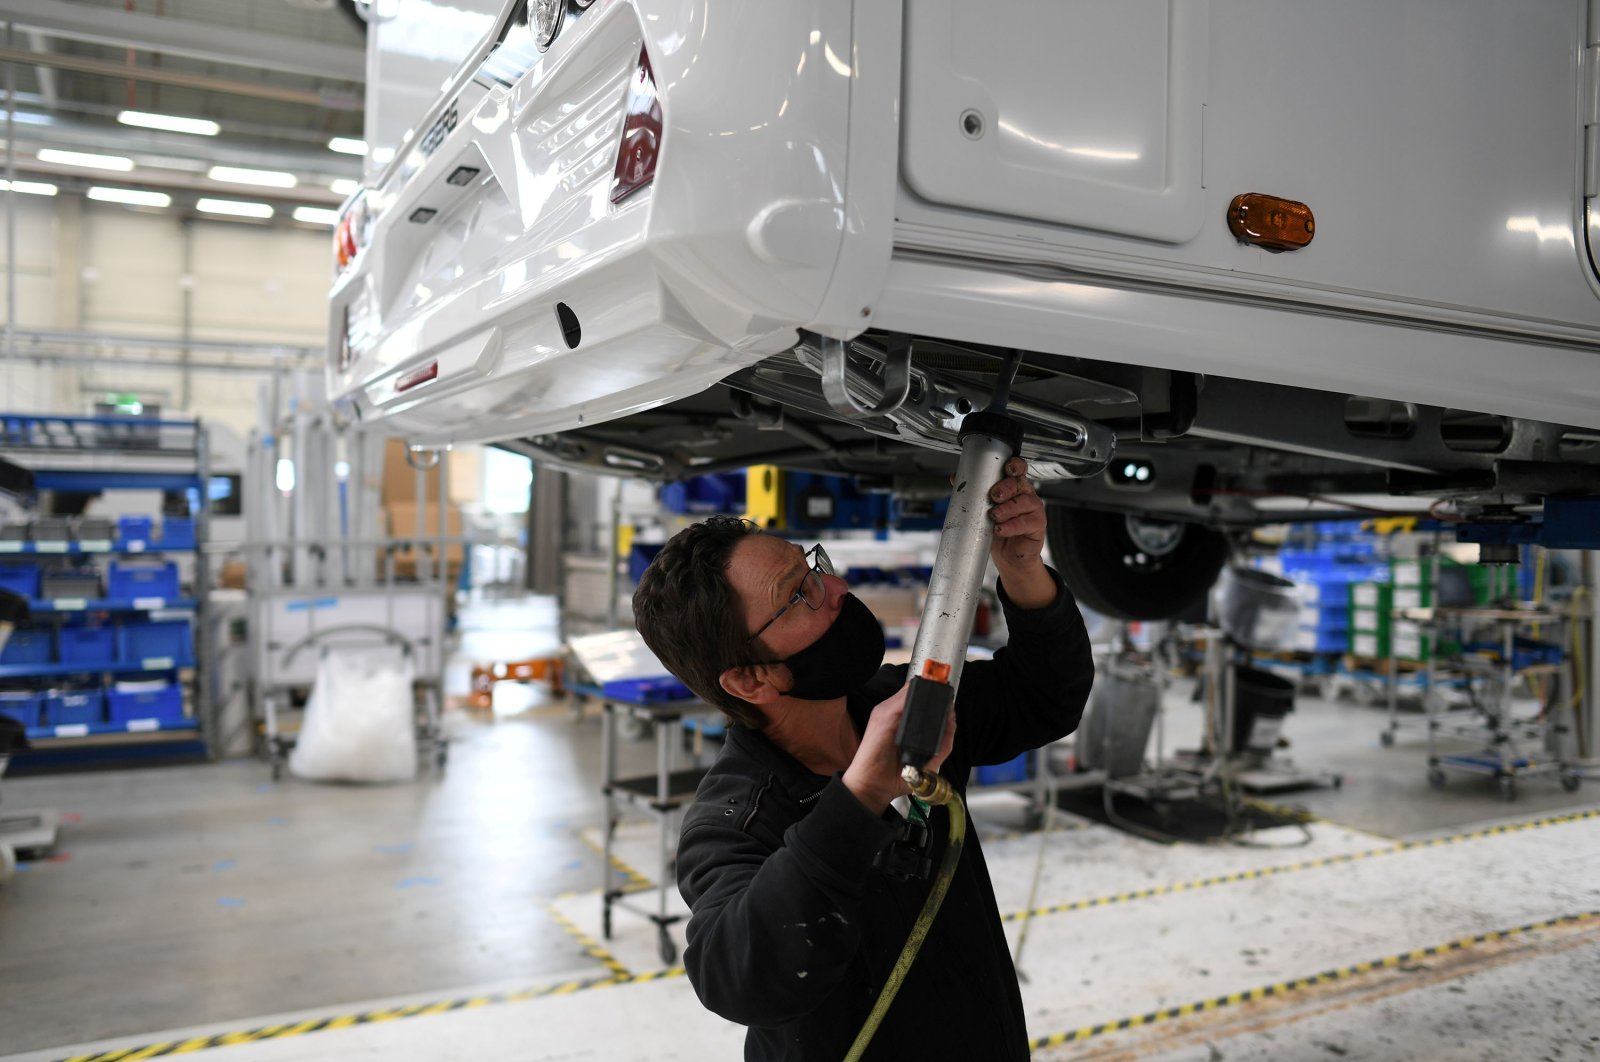 A worker assembles a vehicle at the Knaus-Tabbert AG factory in Jandelsbrunn near Passau, Germany, March 16, 2021. (Reuters Photo)